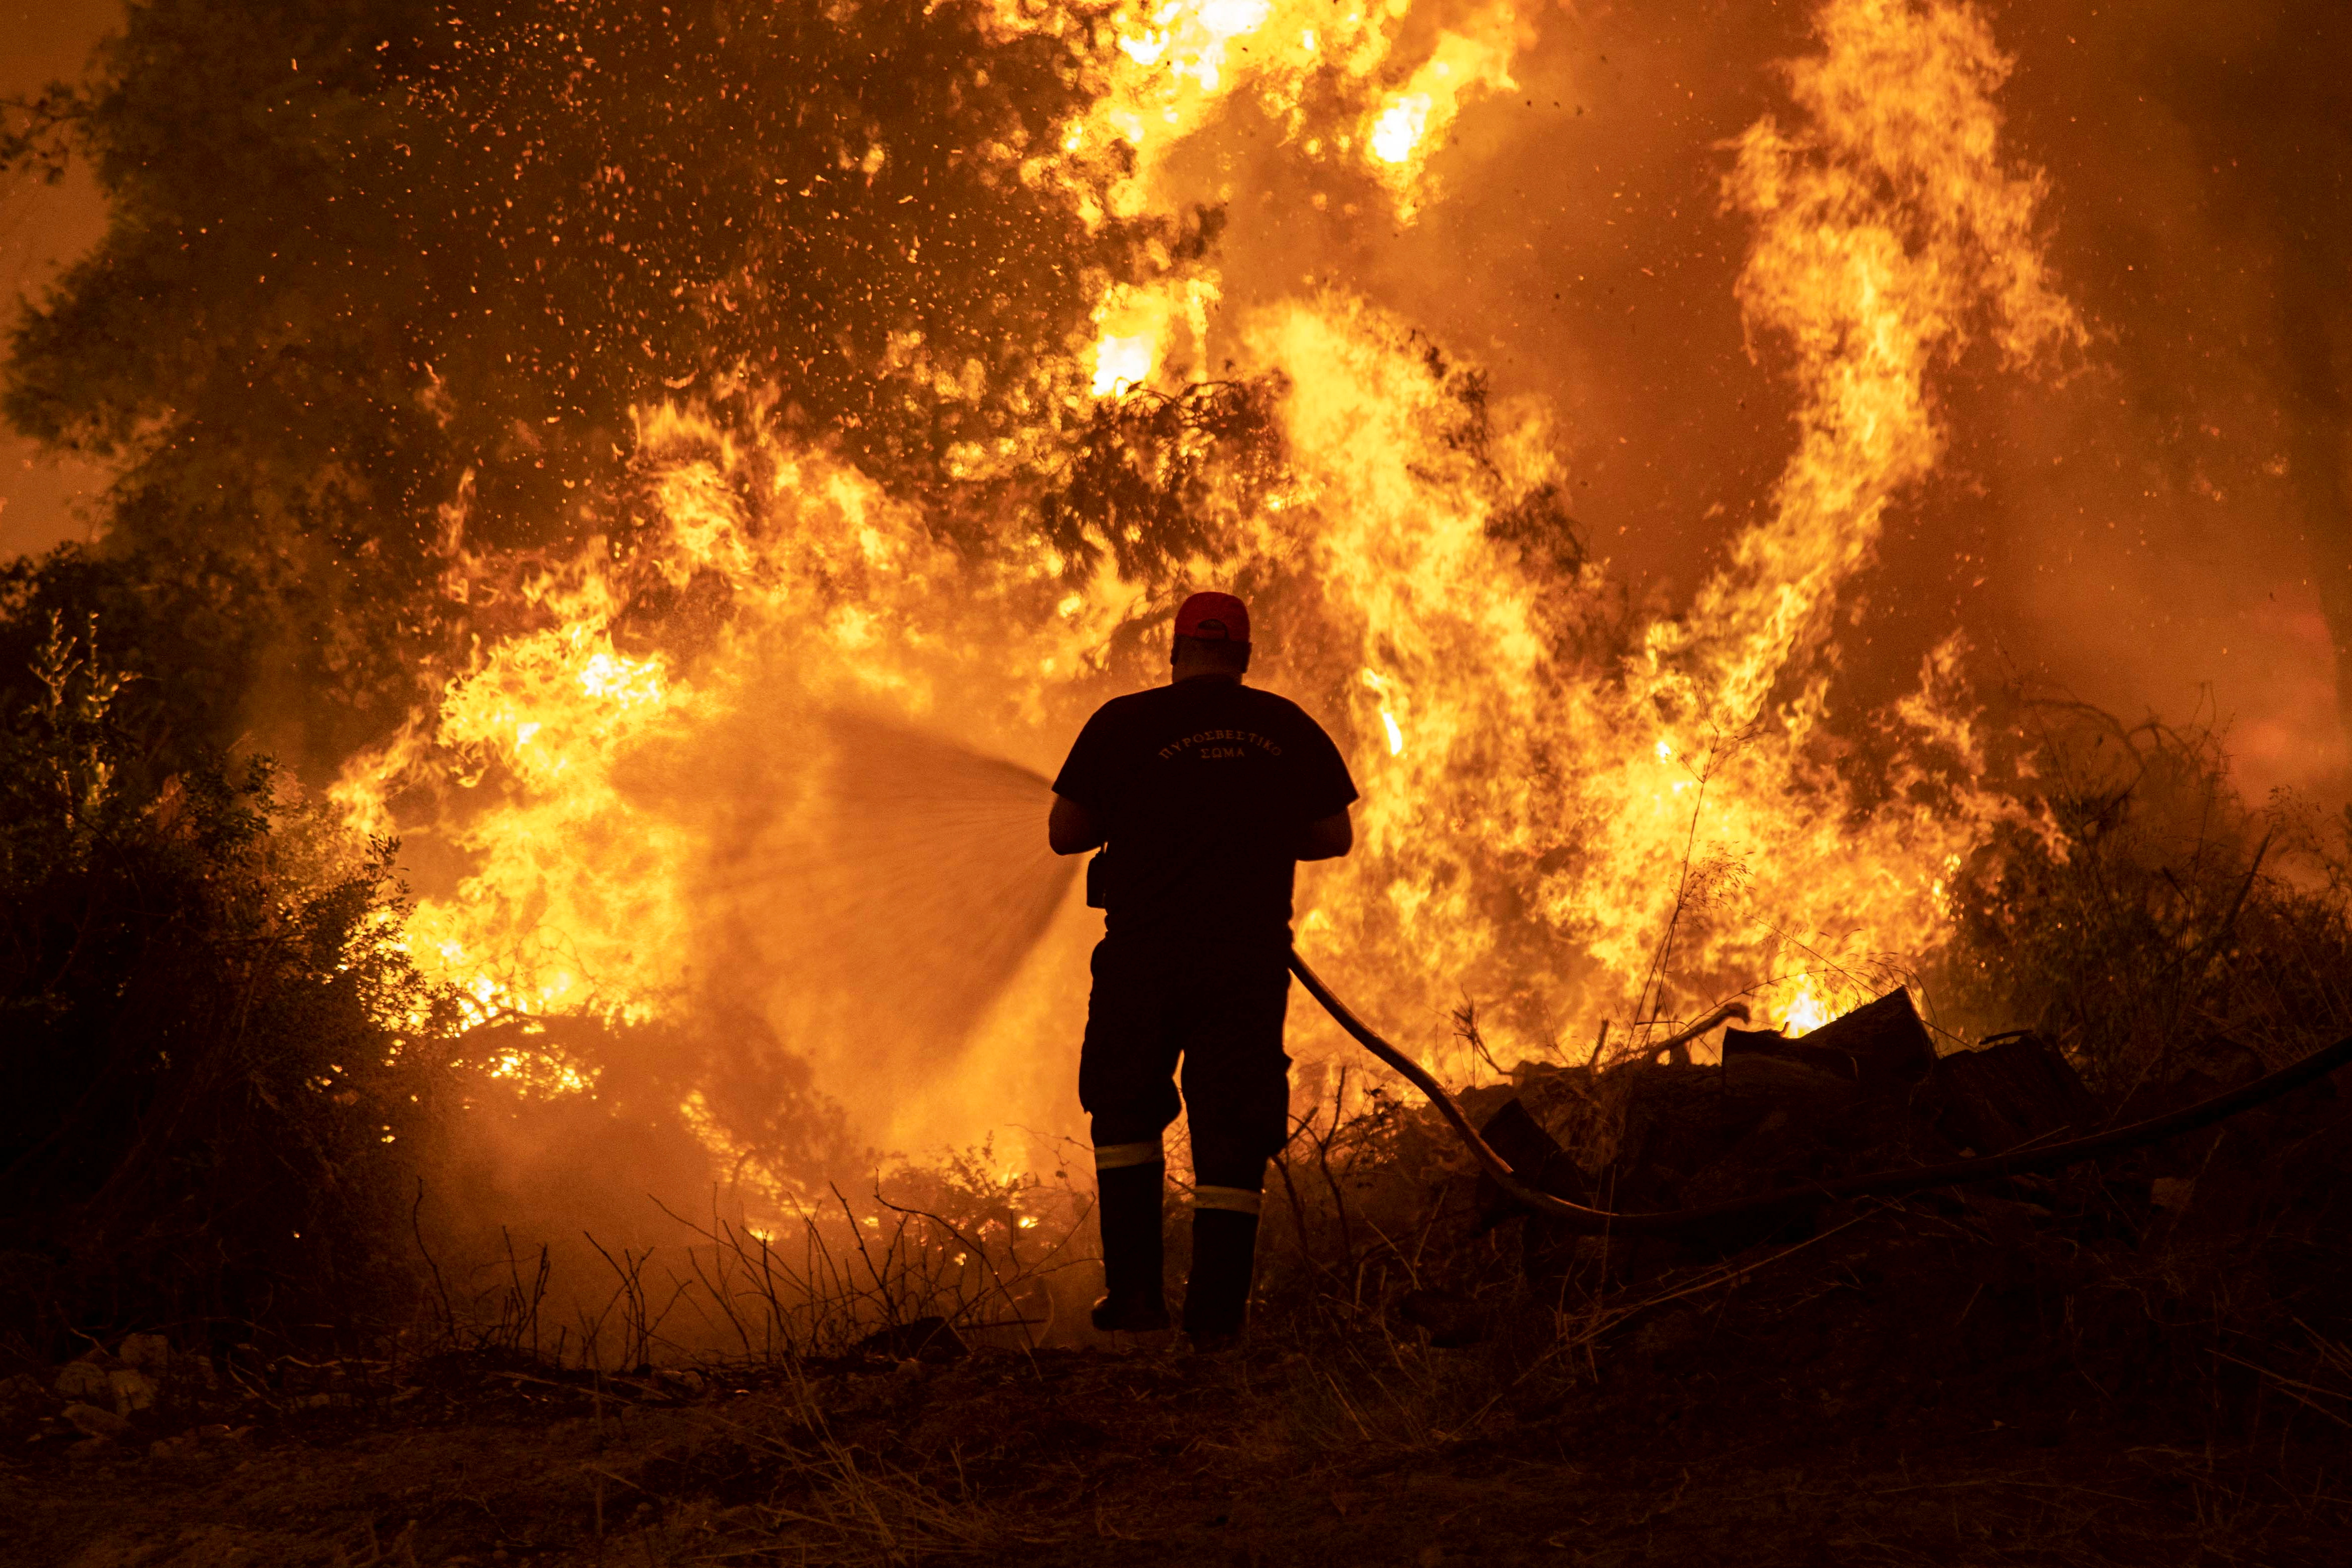 10% of Greece's forest has been destroyed in this fire.  Firefighters are trying day and night to put out the fire.